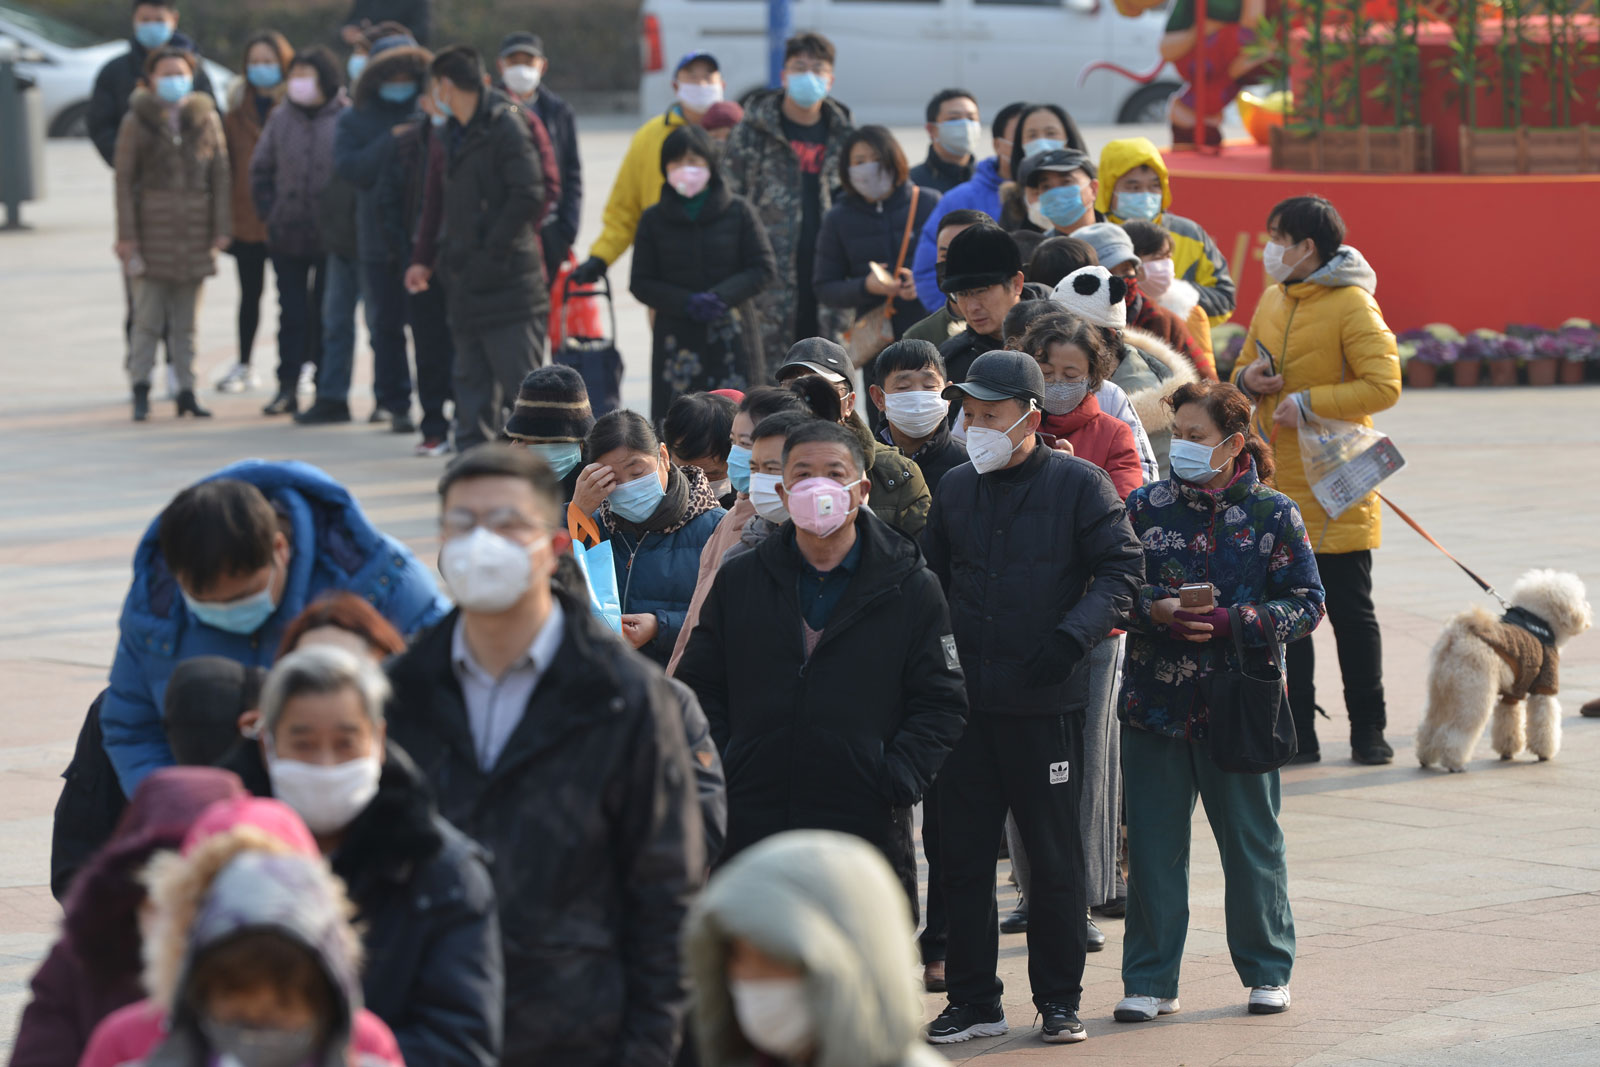 People line up outside a drugstore to buy medical masks in Nanjing, China, on Wednesday, January 29.